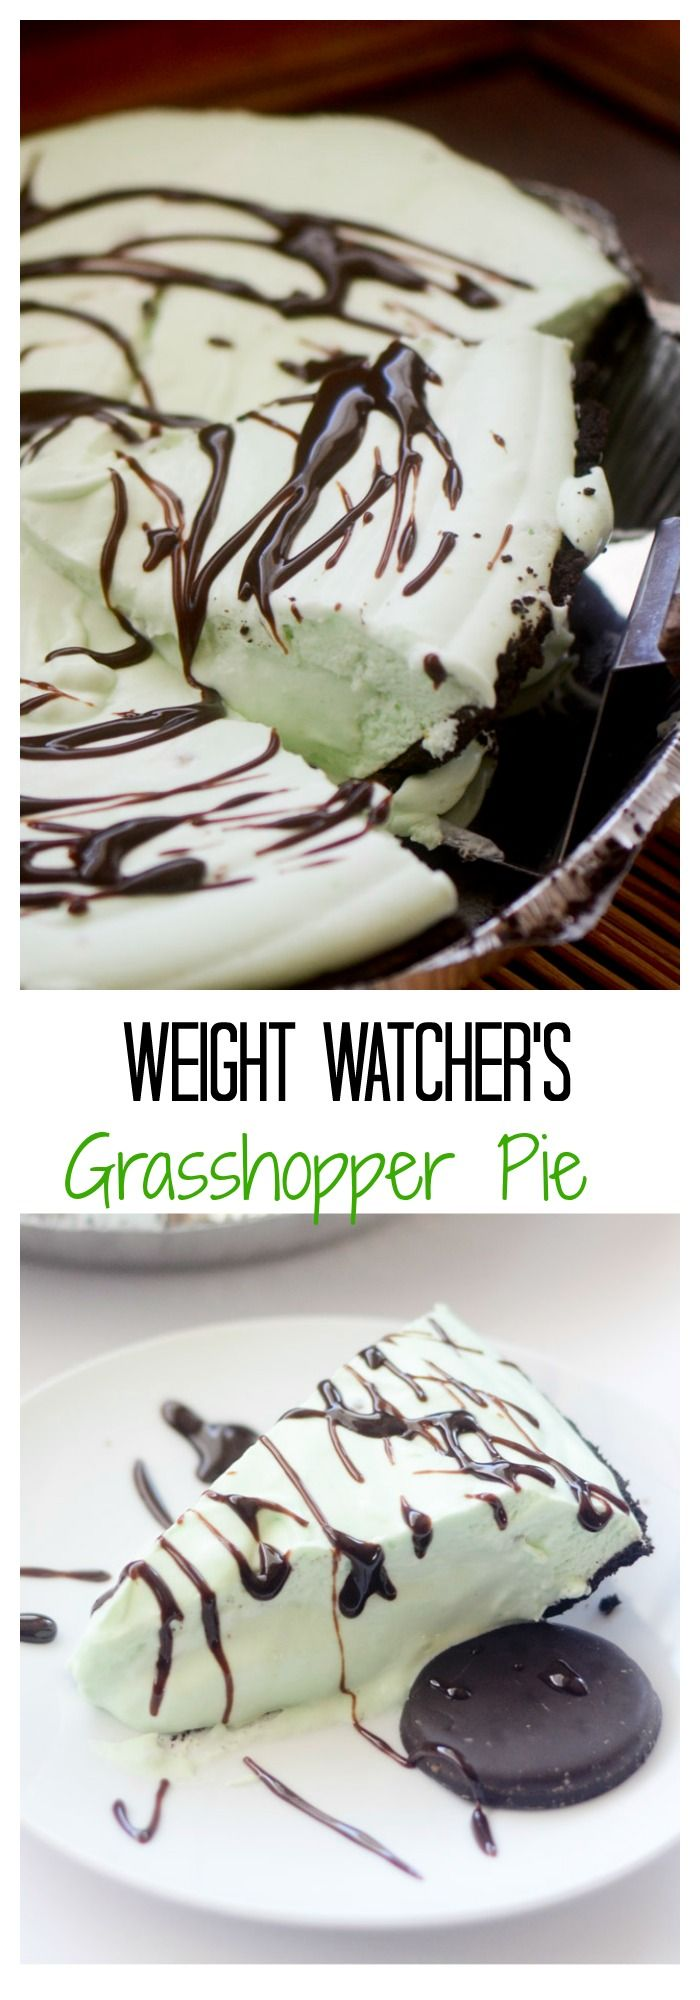 Weight Watcher's Grasshopper Pie - I'm sorry this is the silliest pin and name for a dessert I have ever heard.